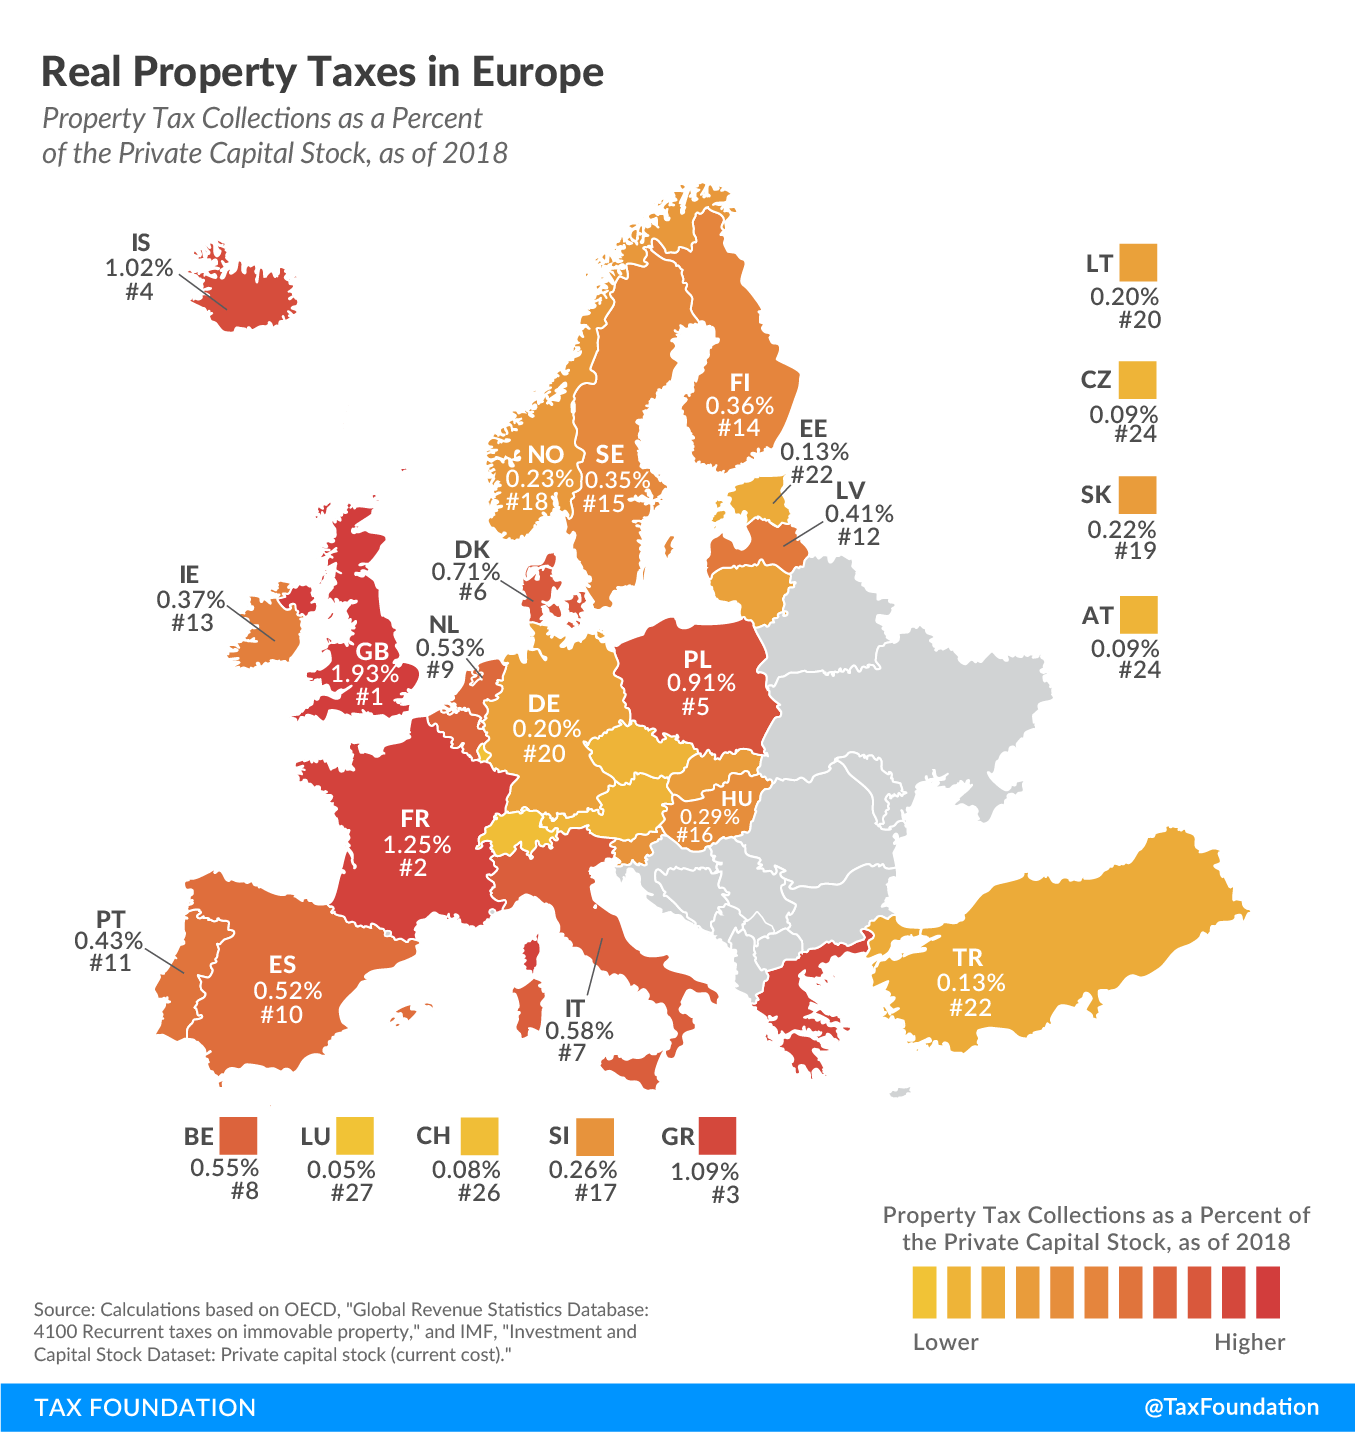 real property taxes in Europe, European property tax rankings, property tax collections as a percent of the private capital stock in 2019